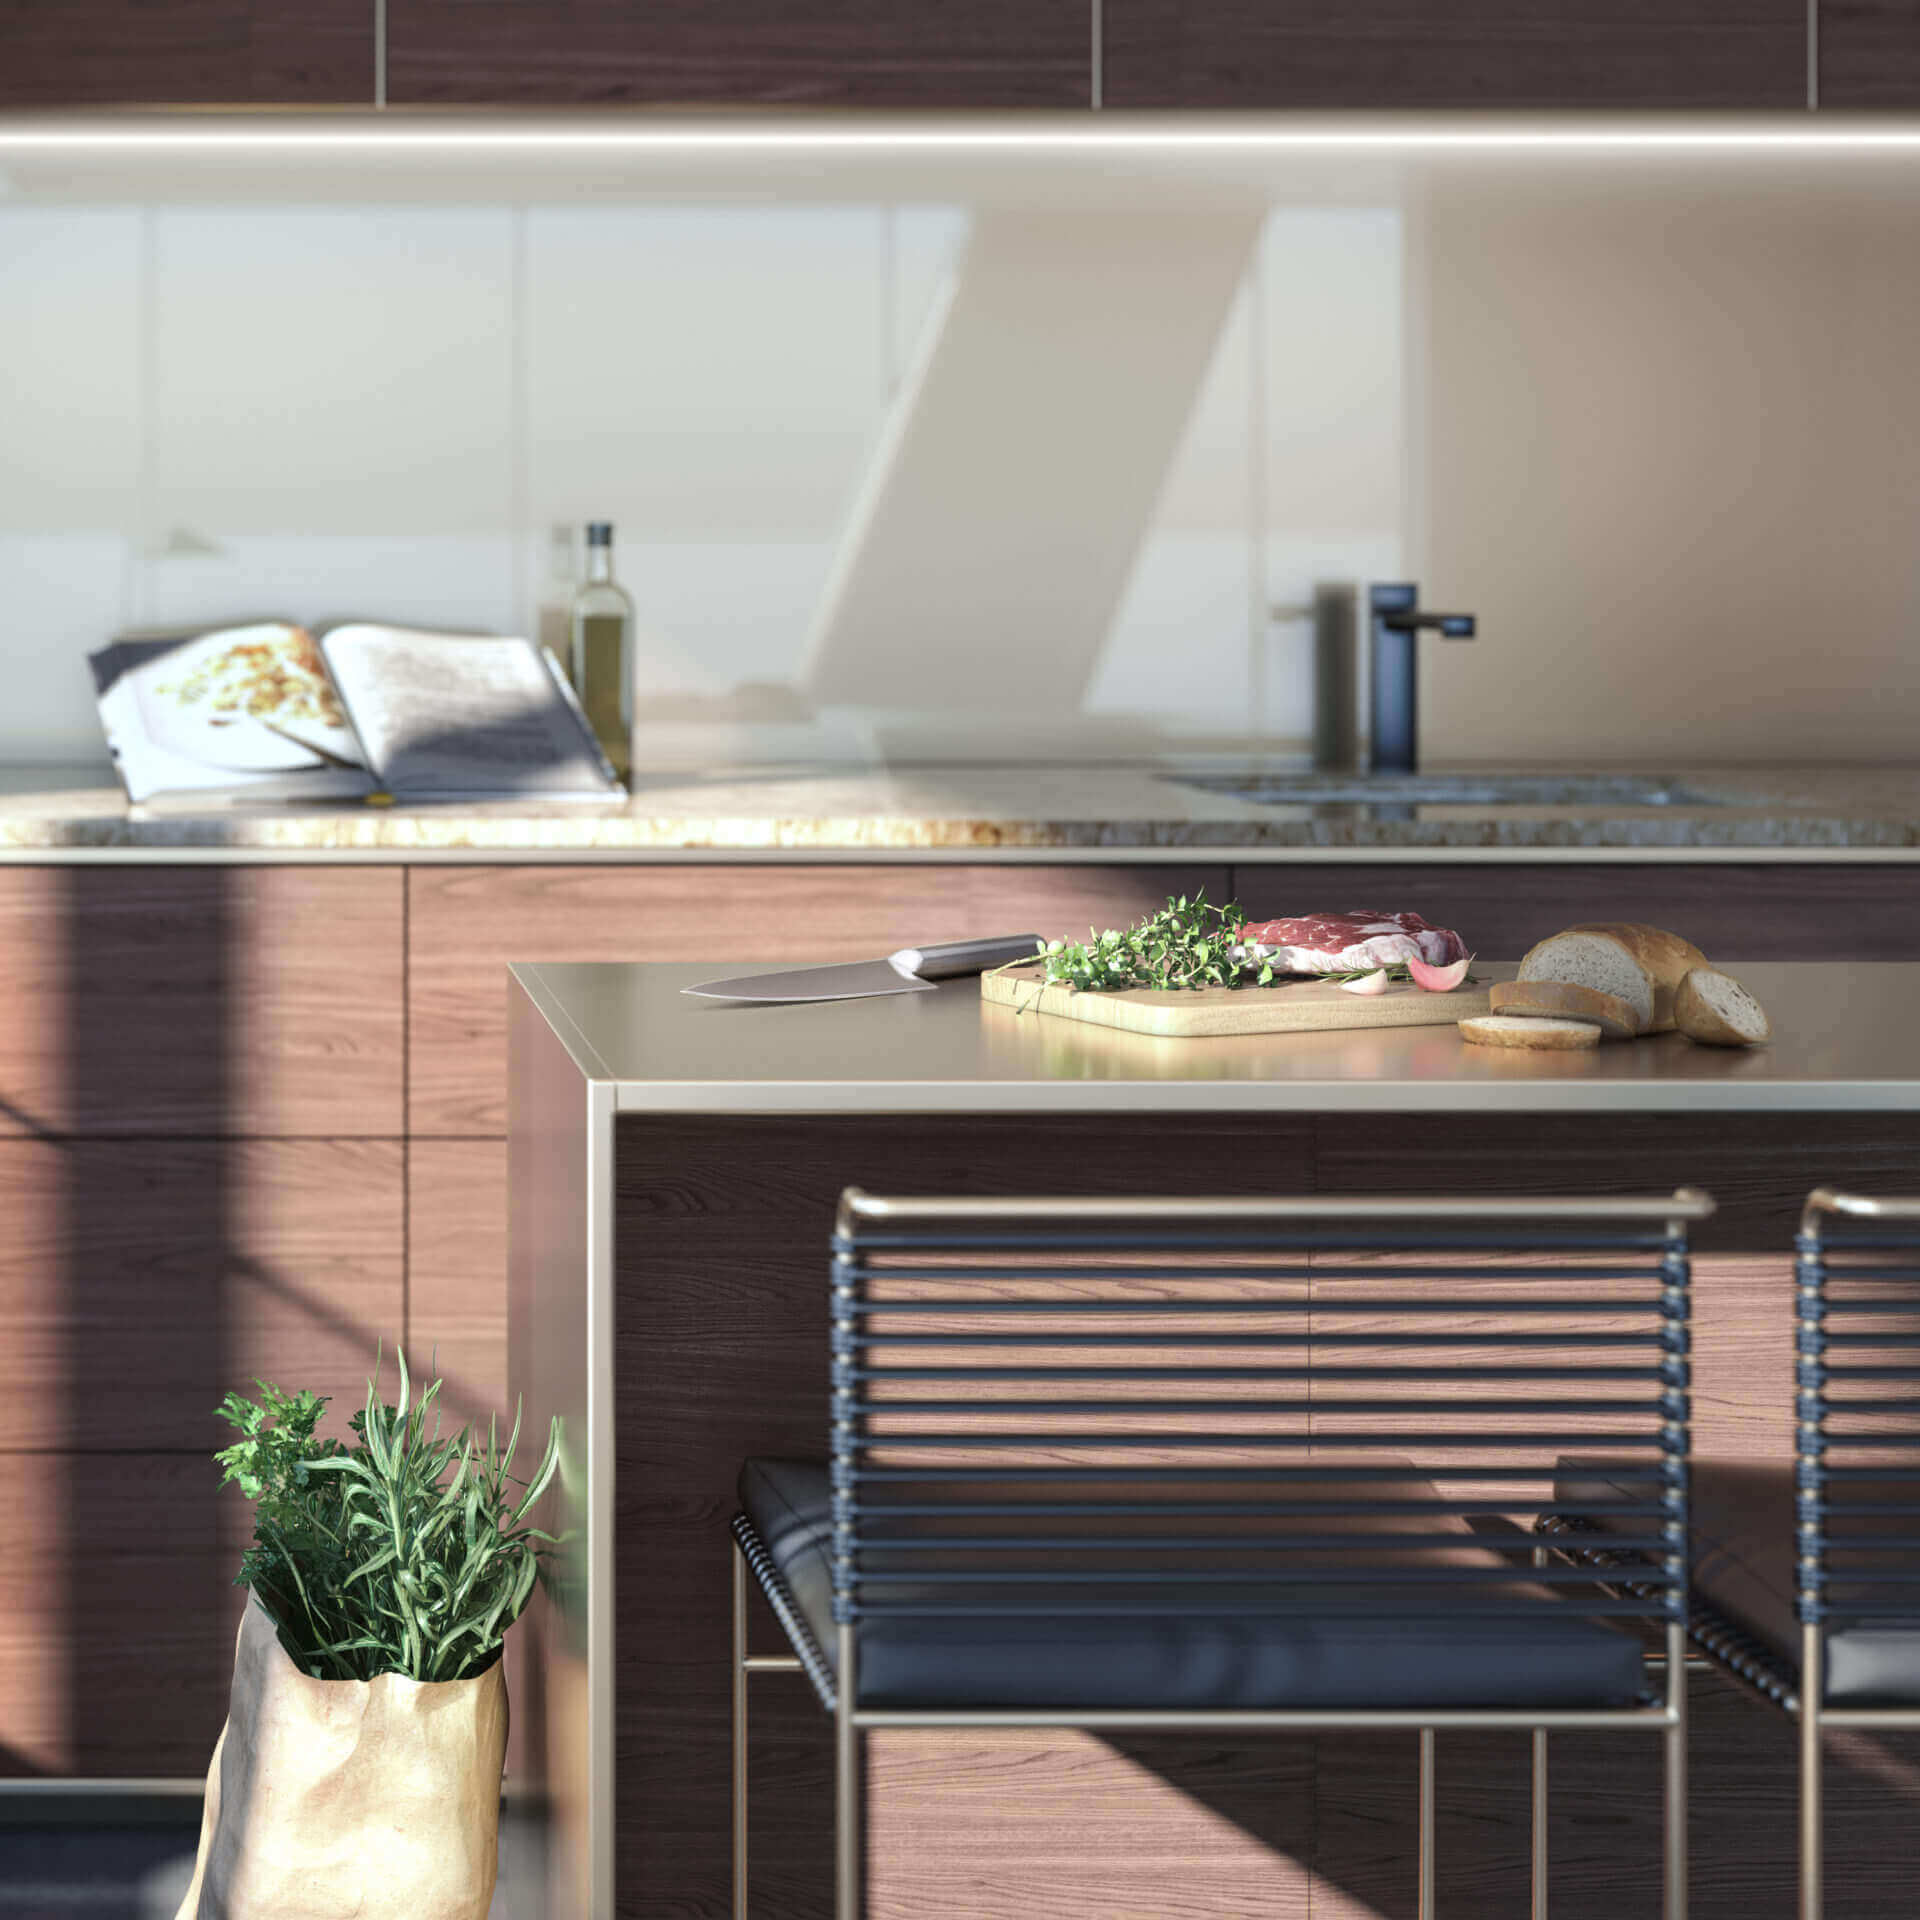 The One Kitchen Rendering